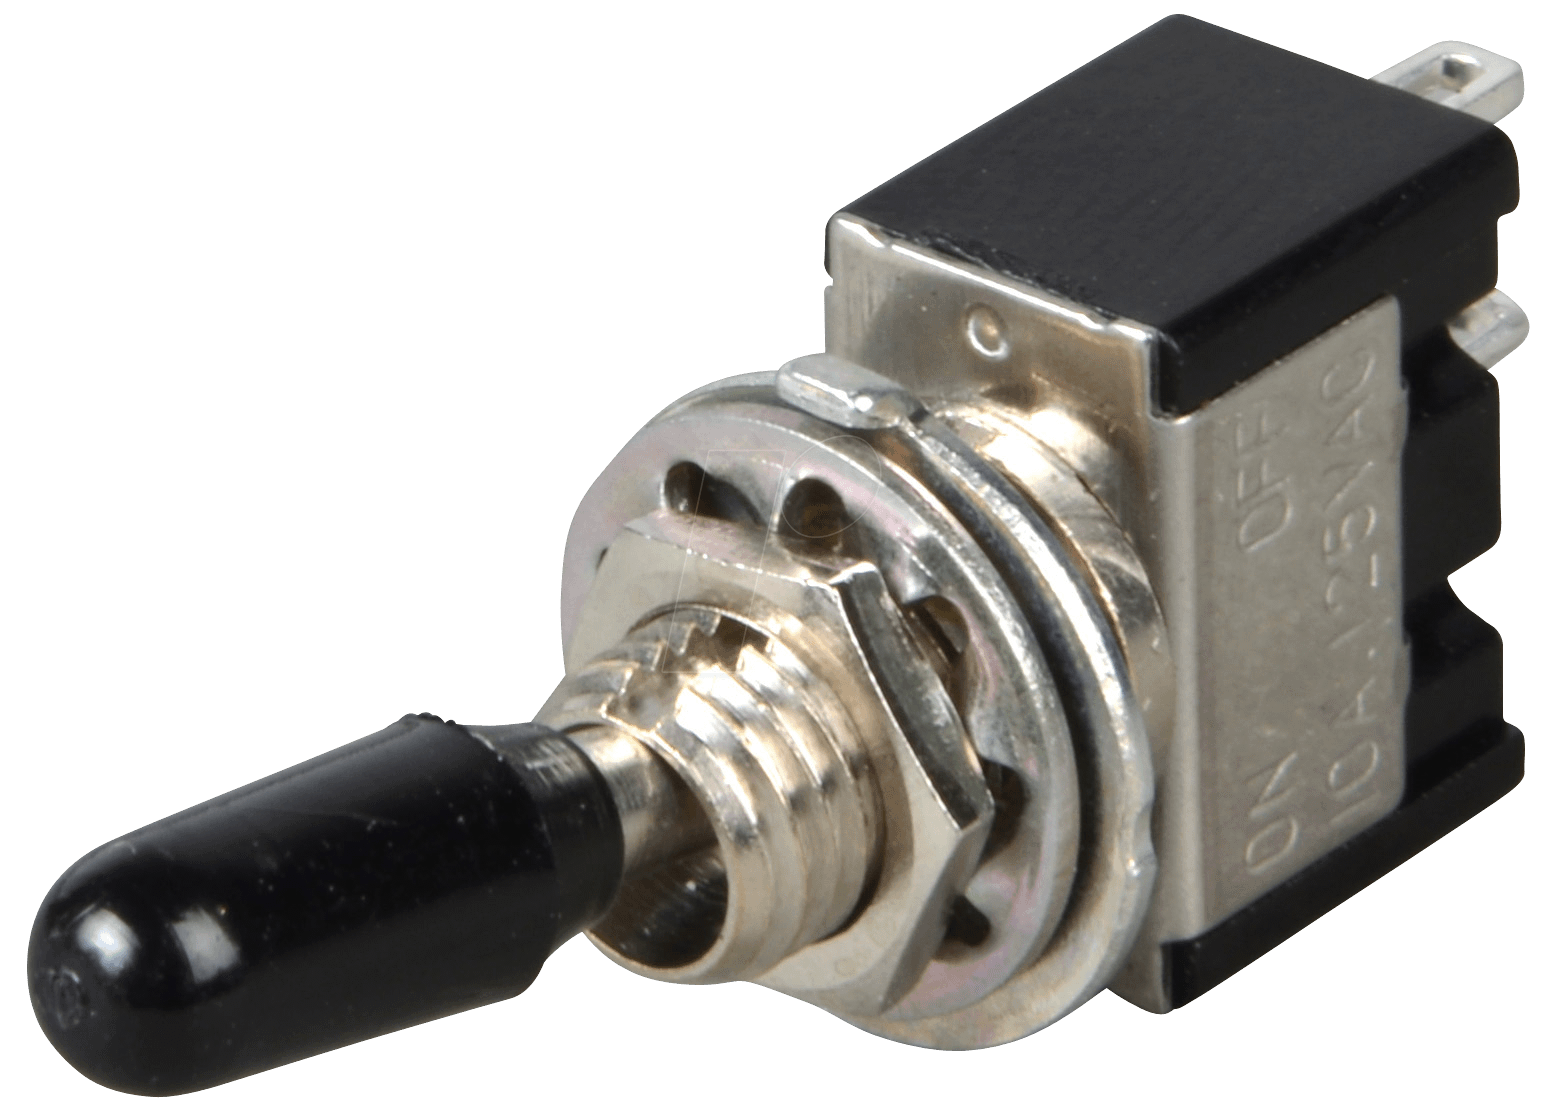 MS 165: Toggle switch, 1-pin, 10 A - 125 V AC, on-off at reichelt elektronik